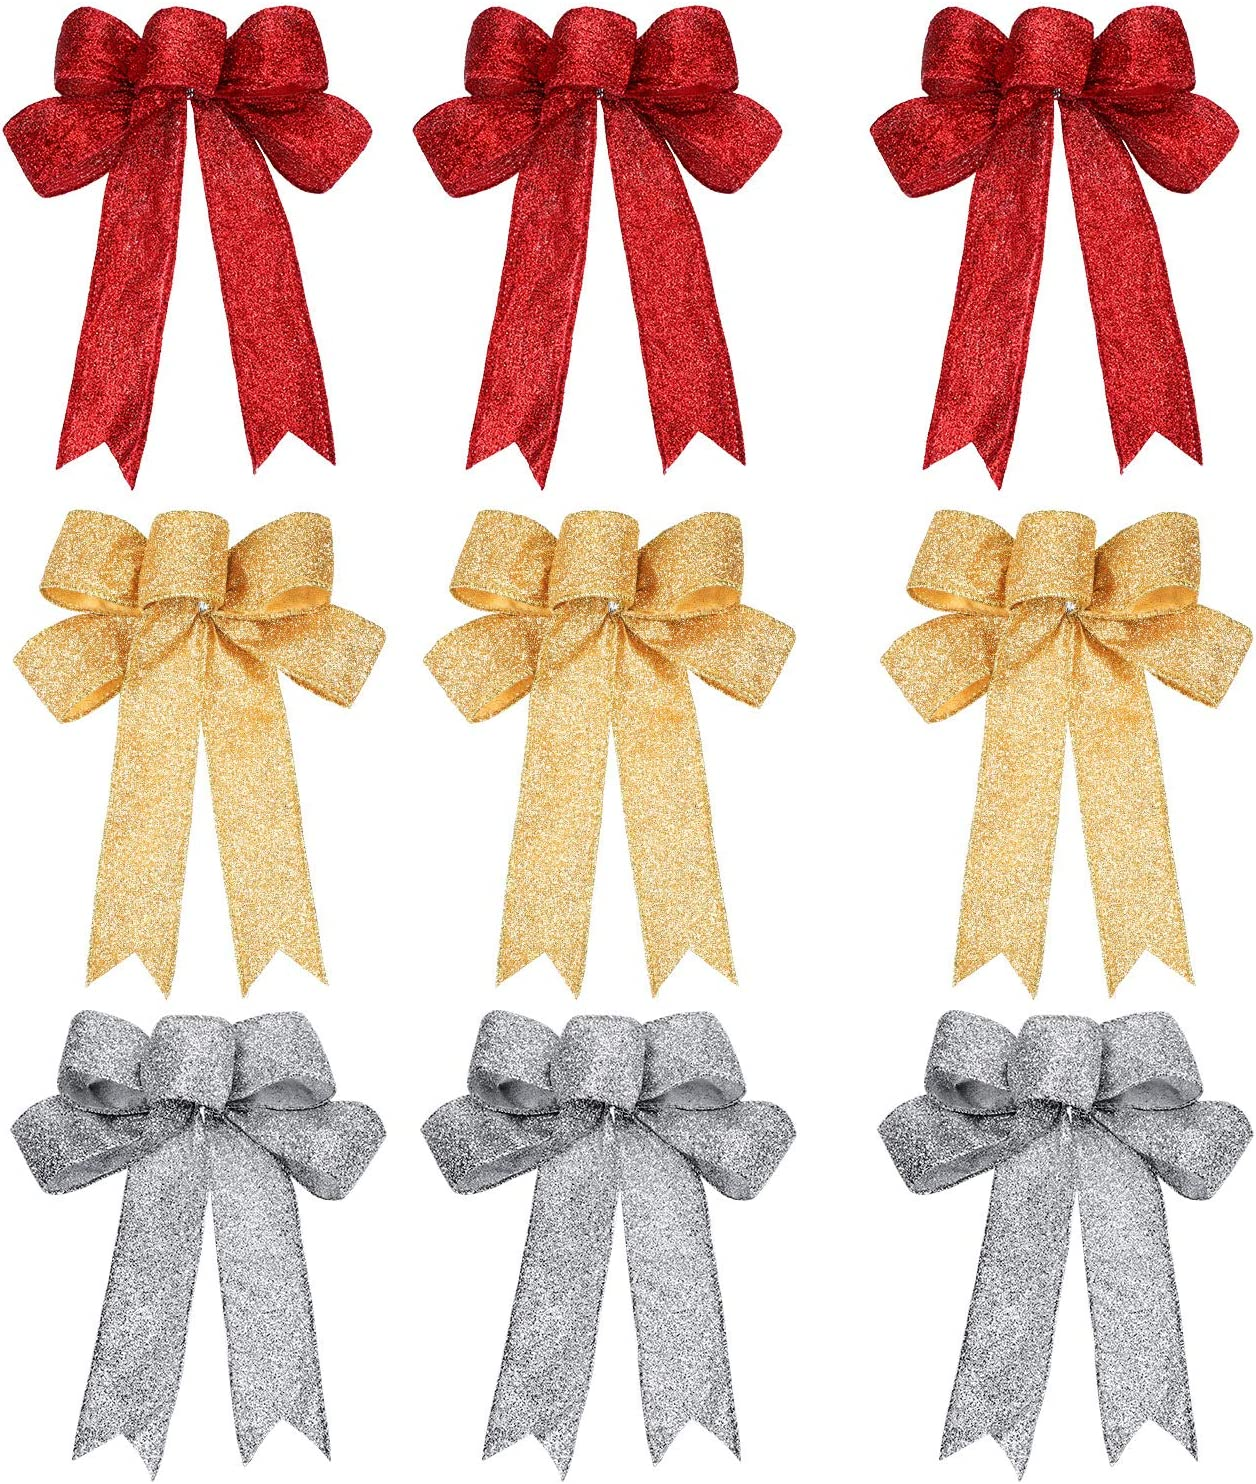 WILLBOND 12 Pieces Glitter Christmas Bows Christmas Wreath Bow Christmas Tree Ornaments Bows for Christmas Party Decoration Gold and Red